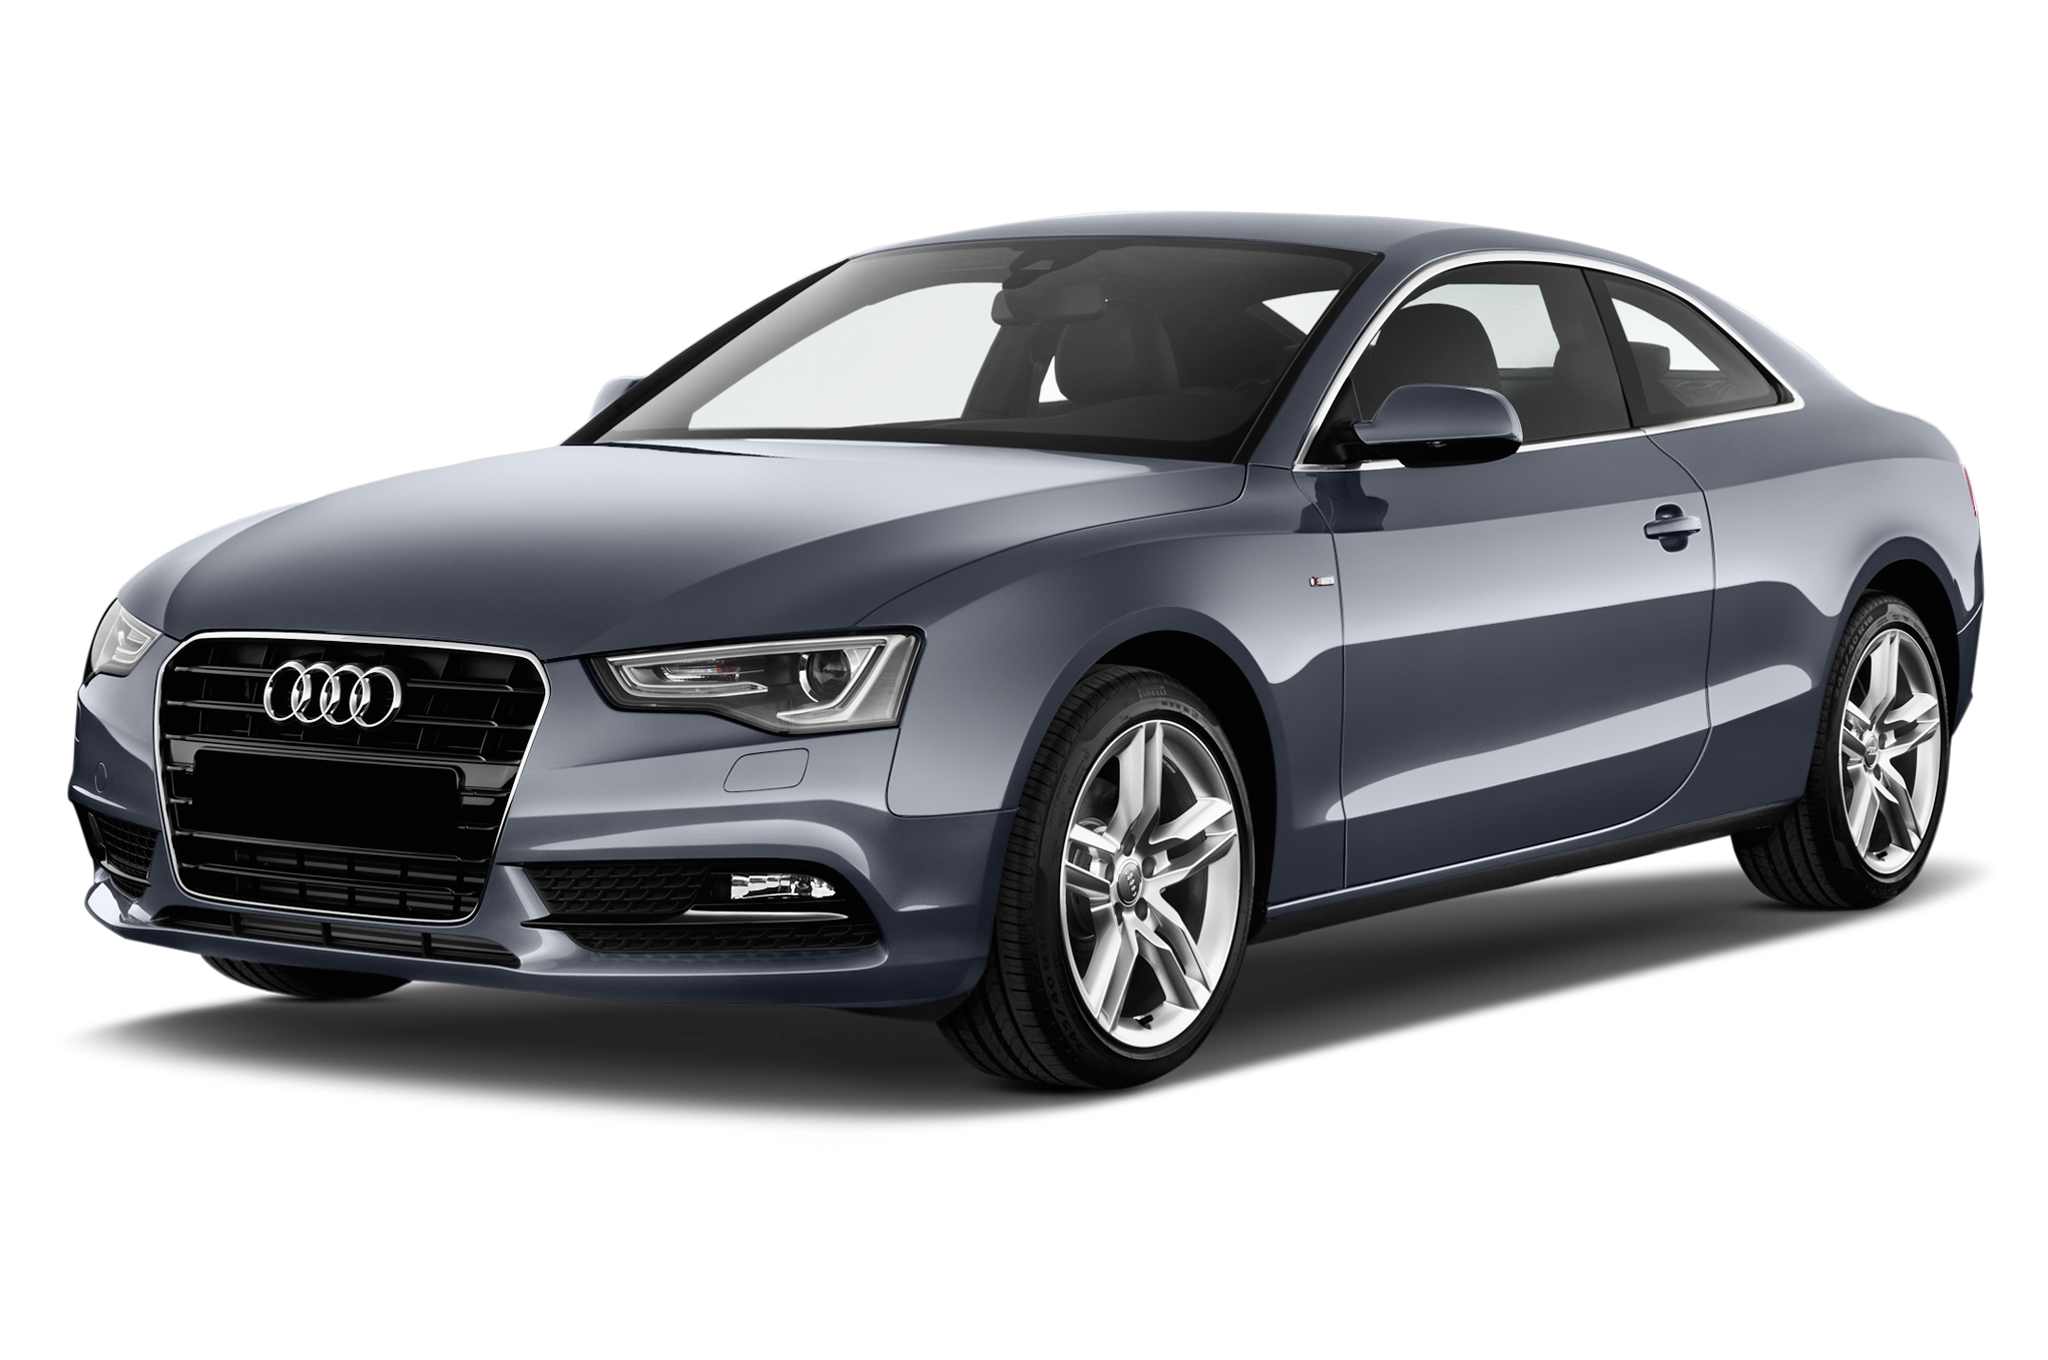 Convertible car clipart clip art Audi A5 PNG Clipart - Download free images in PNG clip art